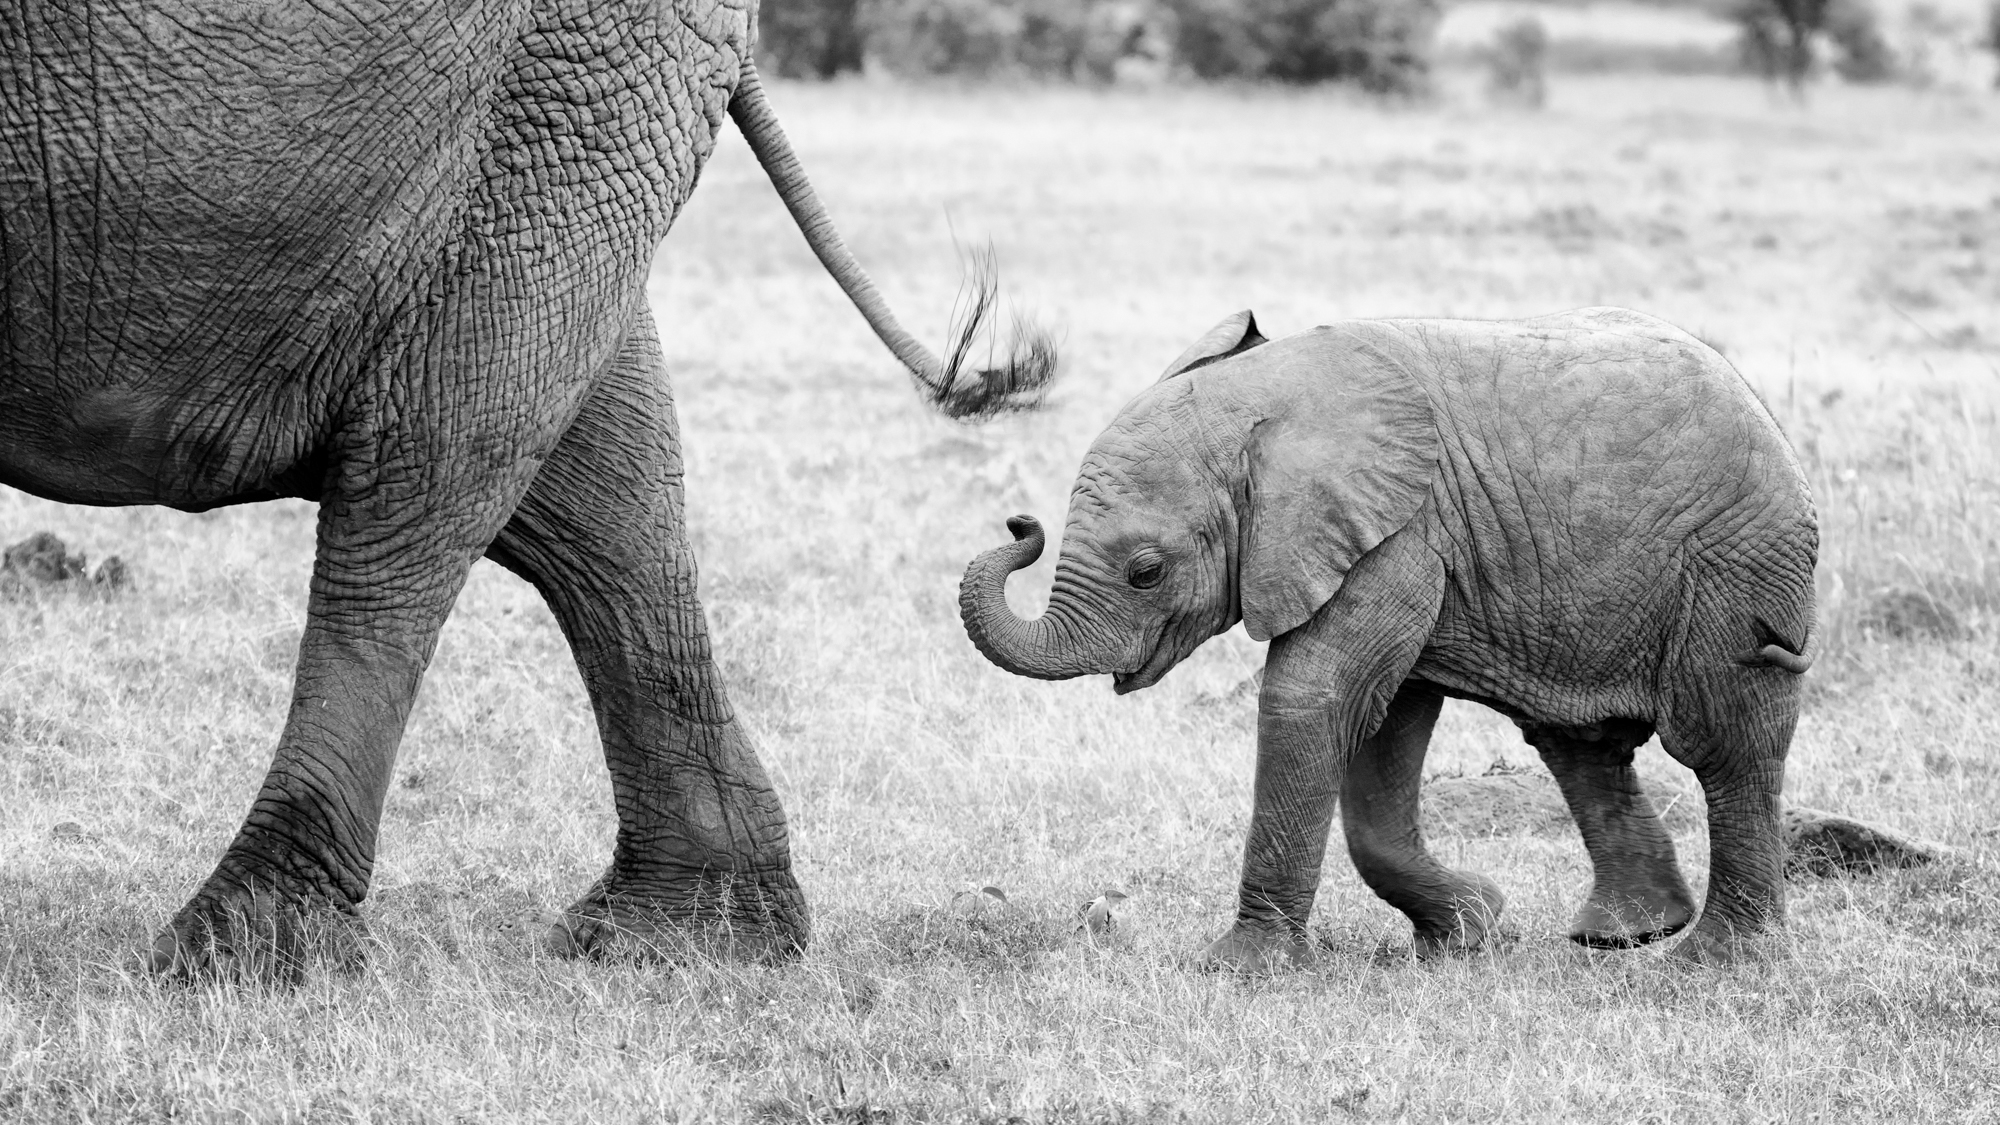 A baby elephant following her mother's tail